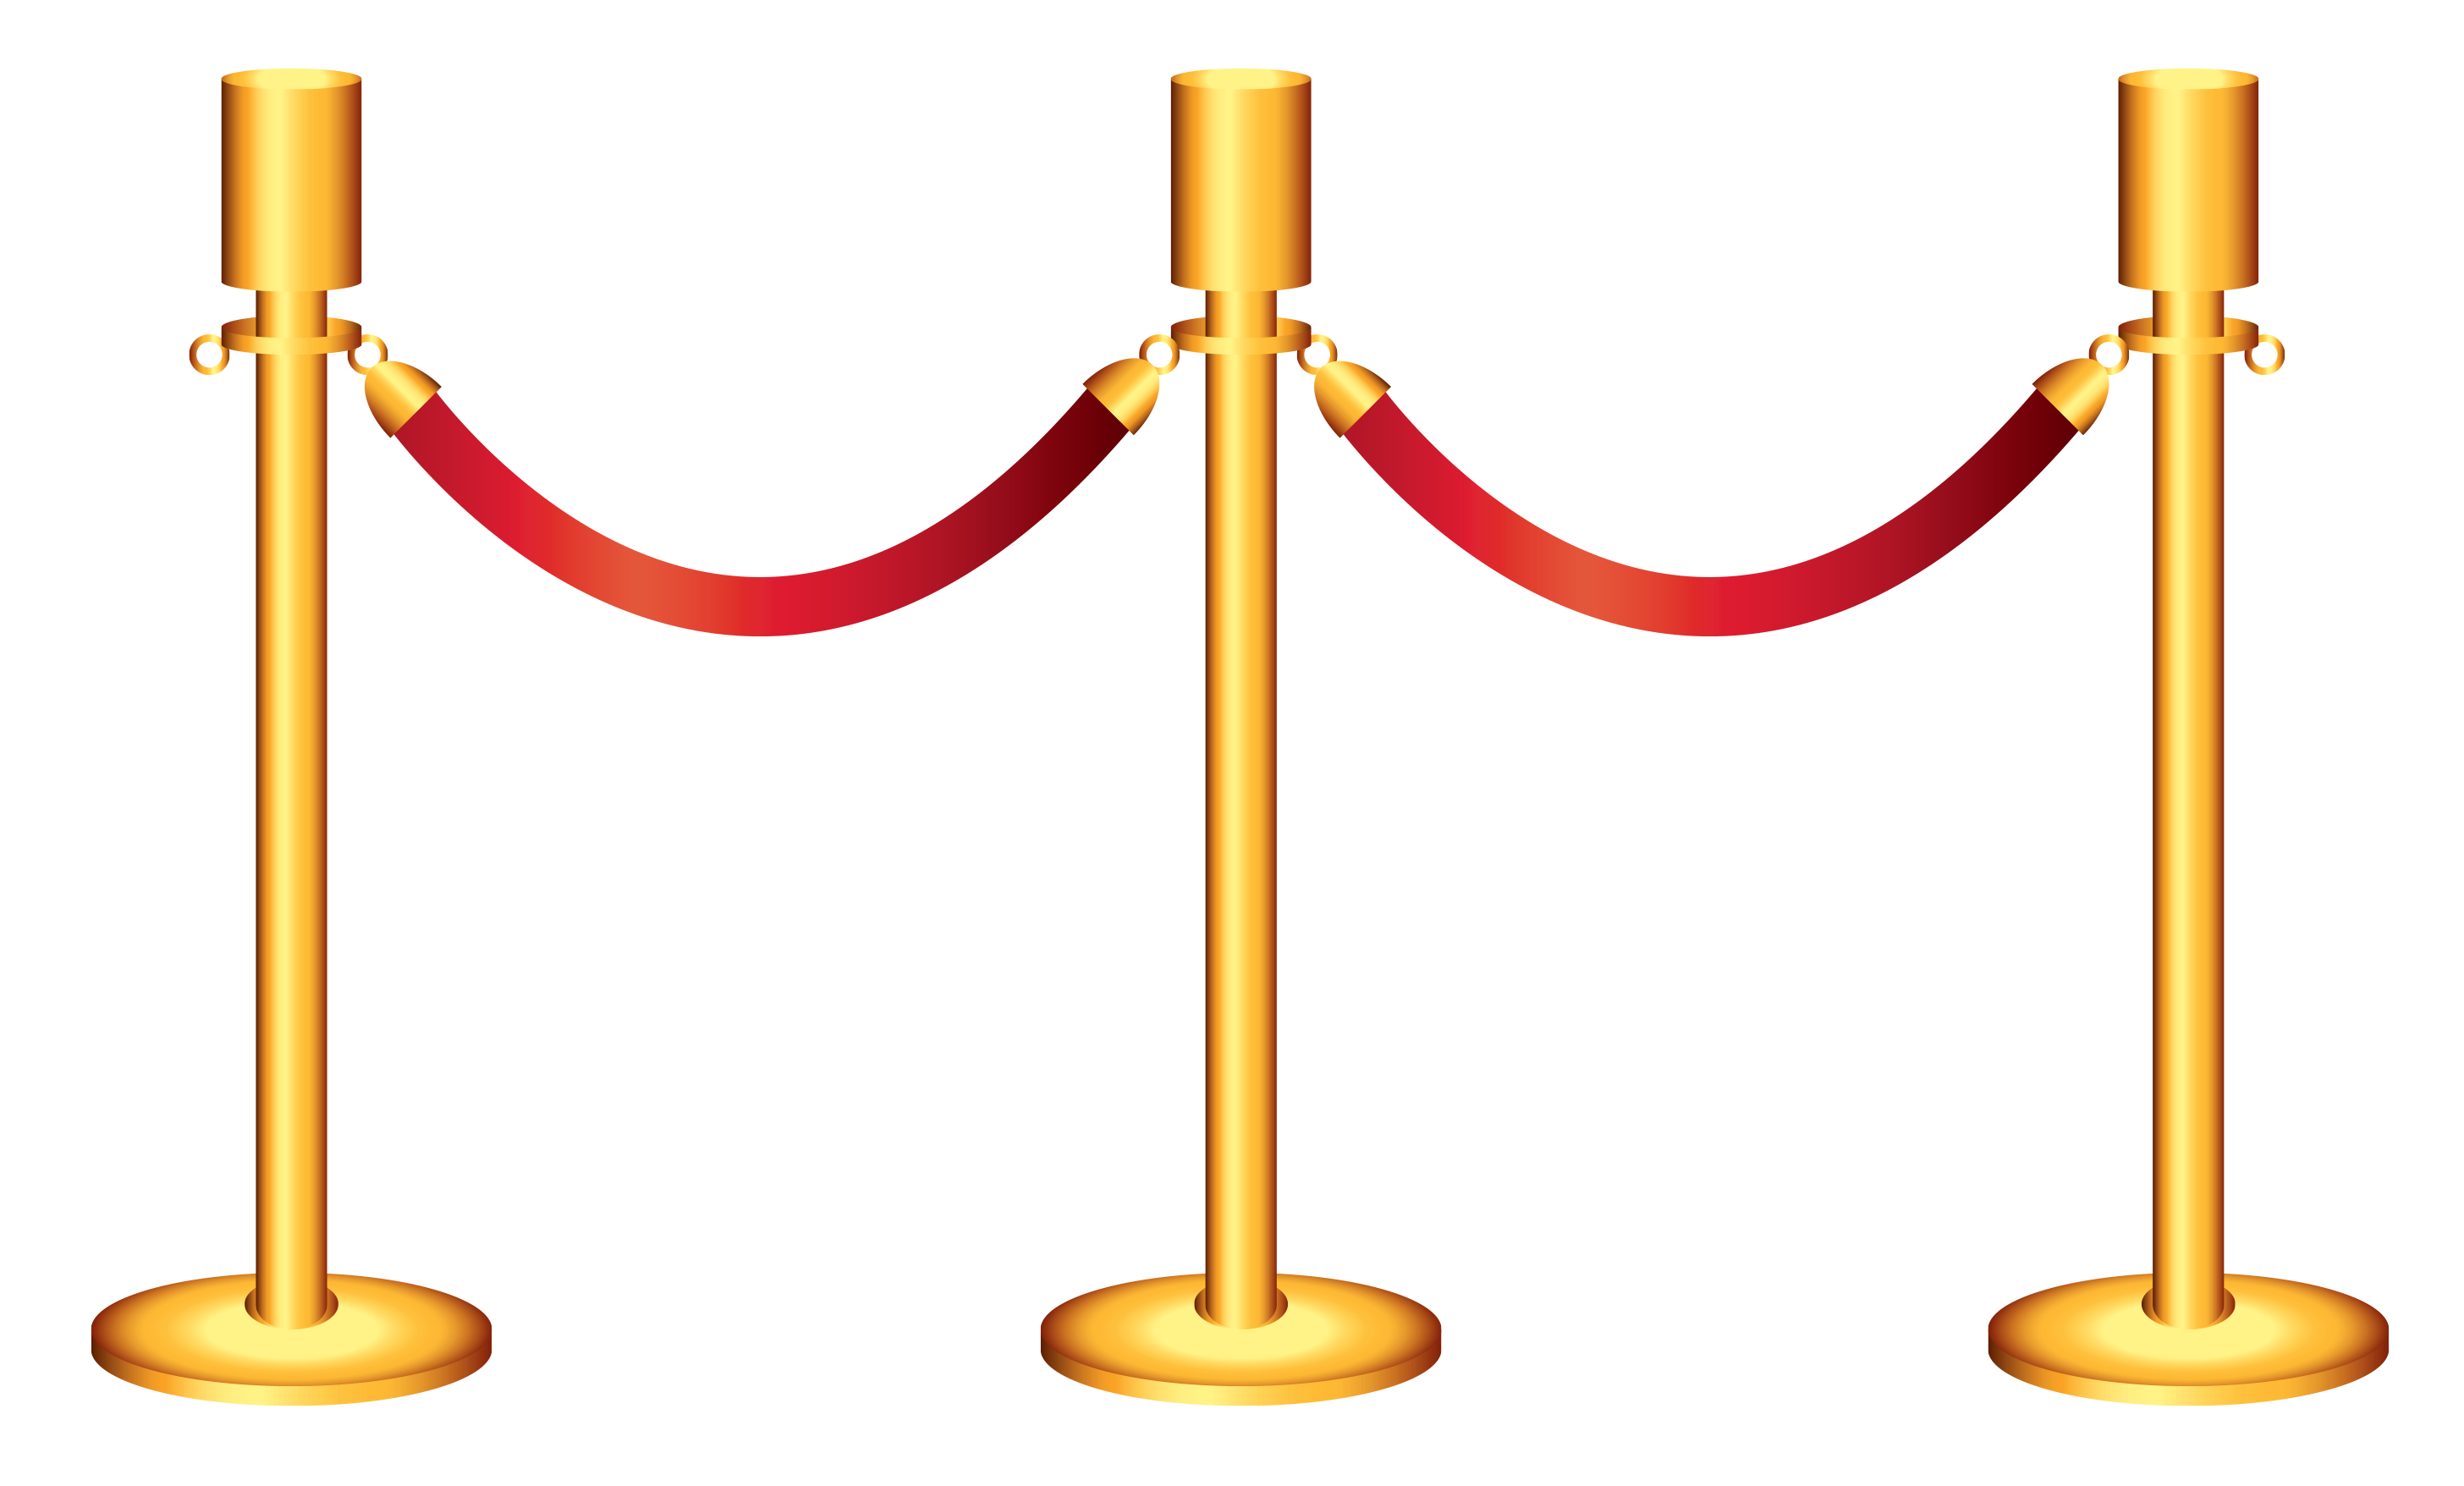 Rope clipart png. Golden barricade transparent gallery